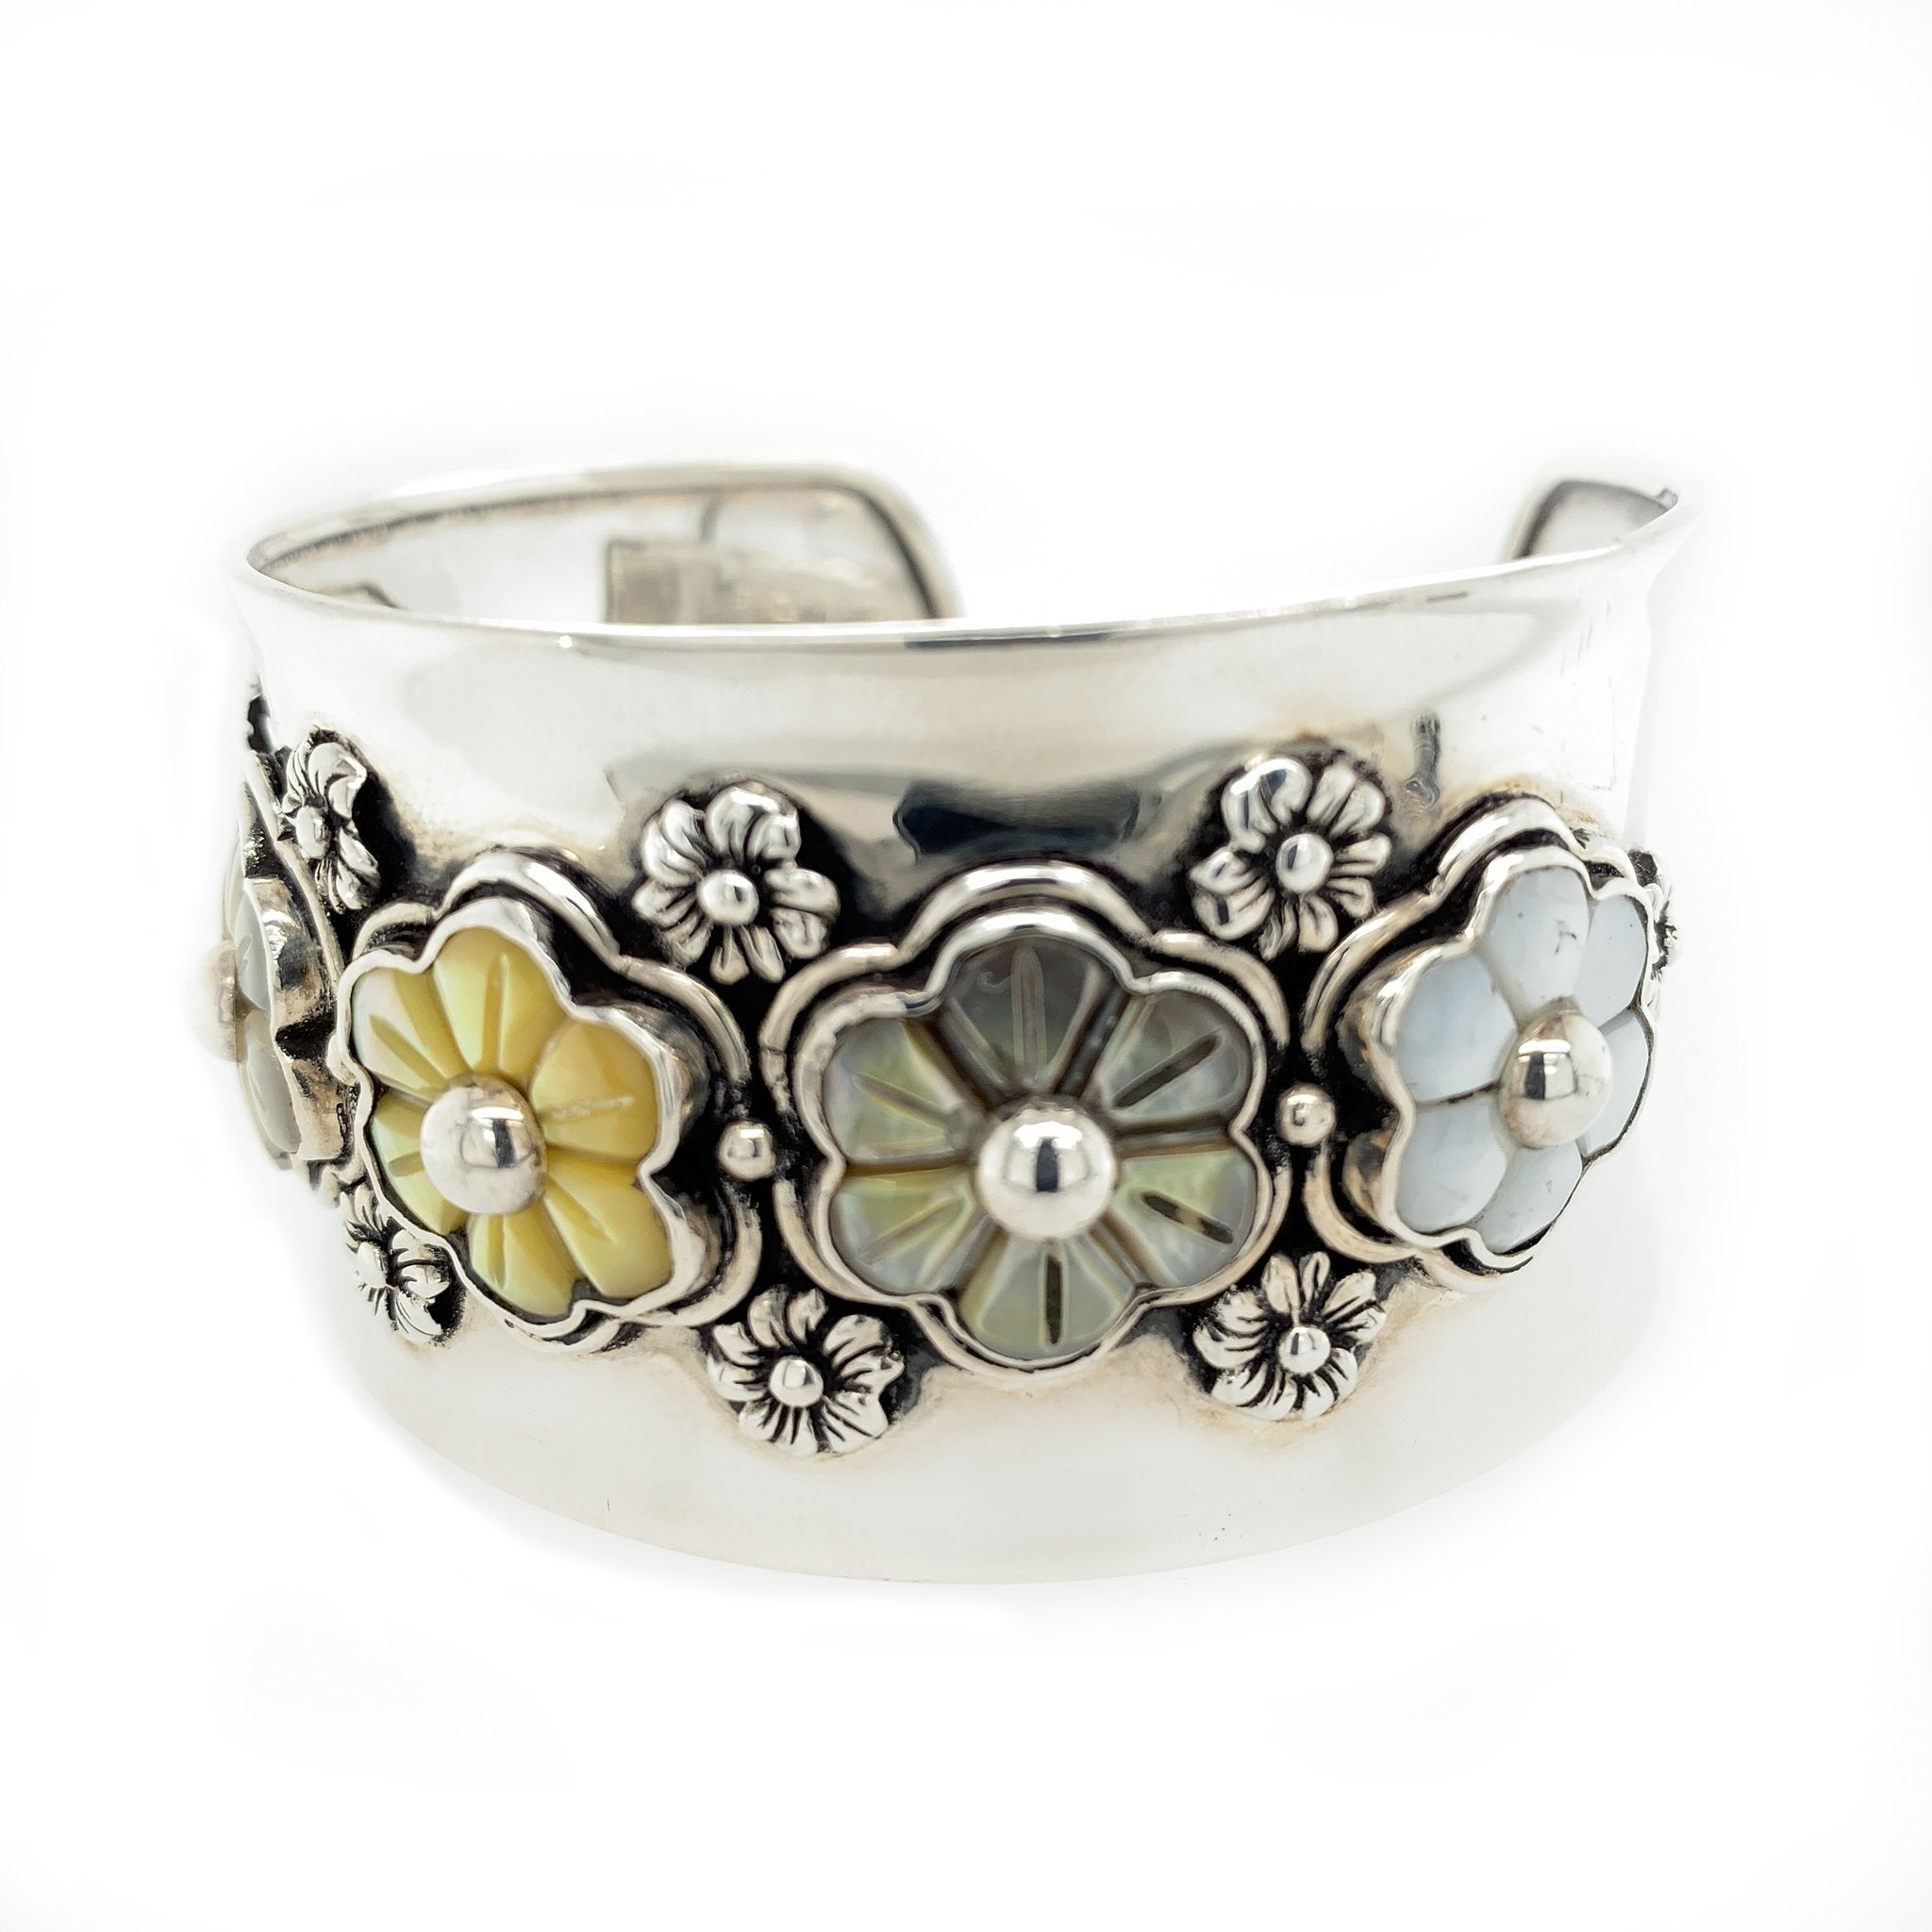 5 Flowers Mother of Pearl Sterling Silver Bracelet Cuff - Qinti - The Peruvian Shop